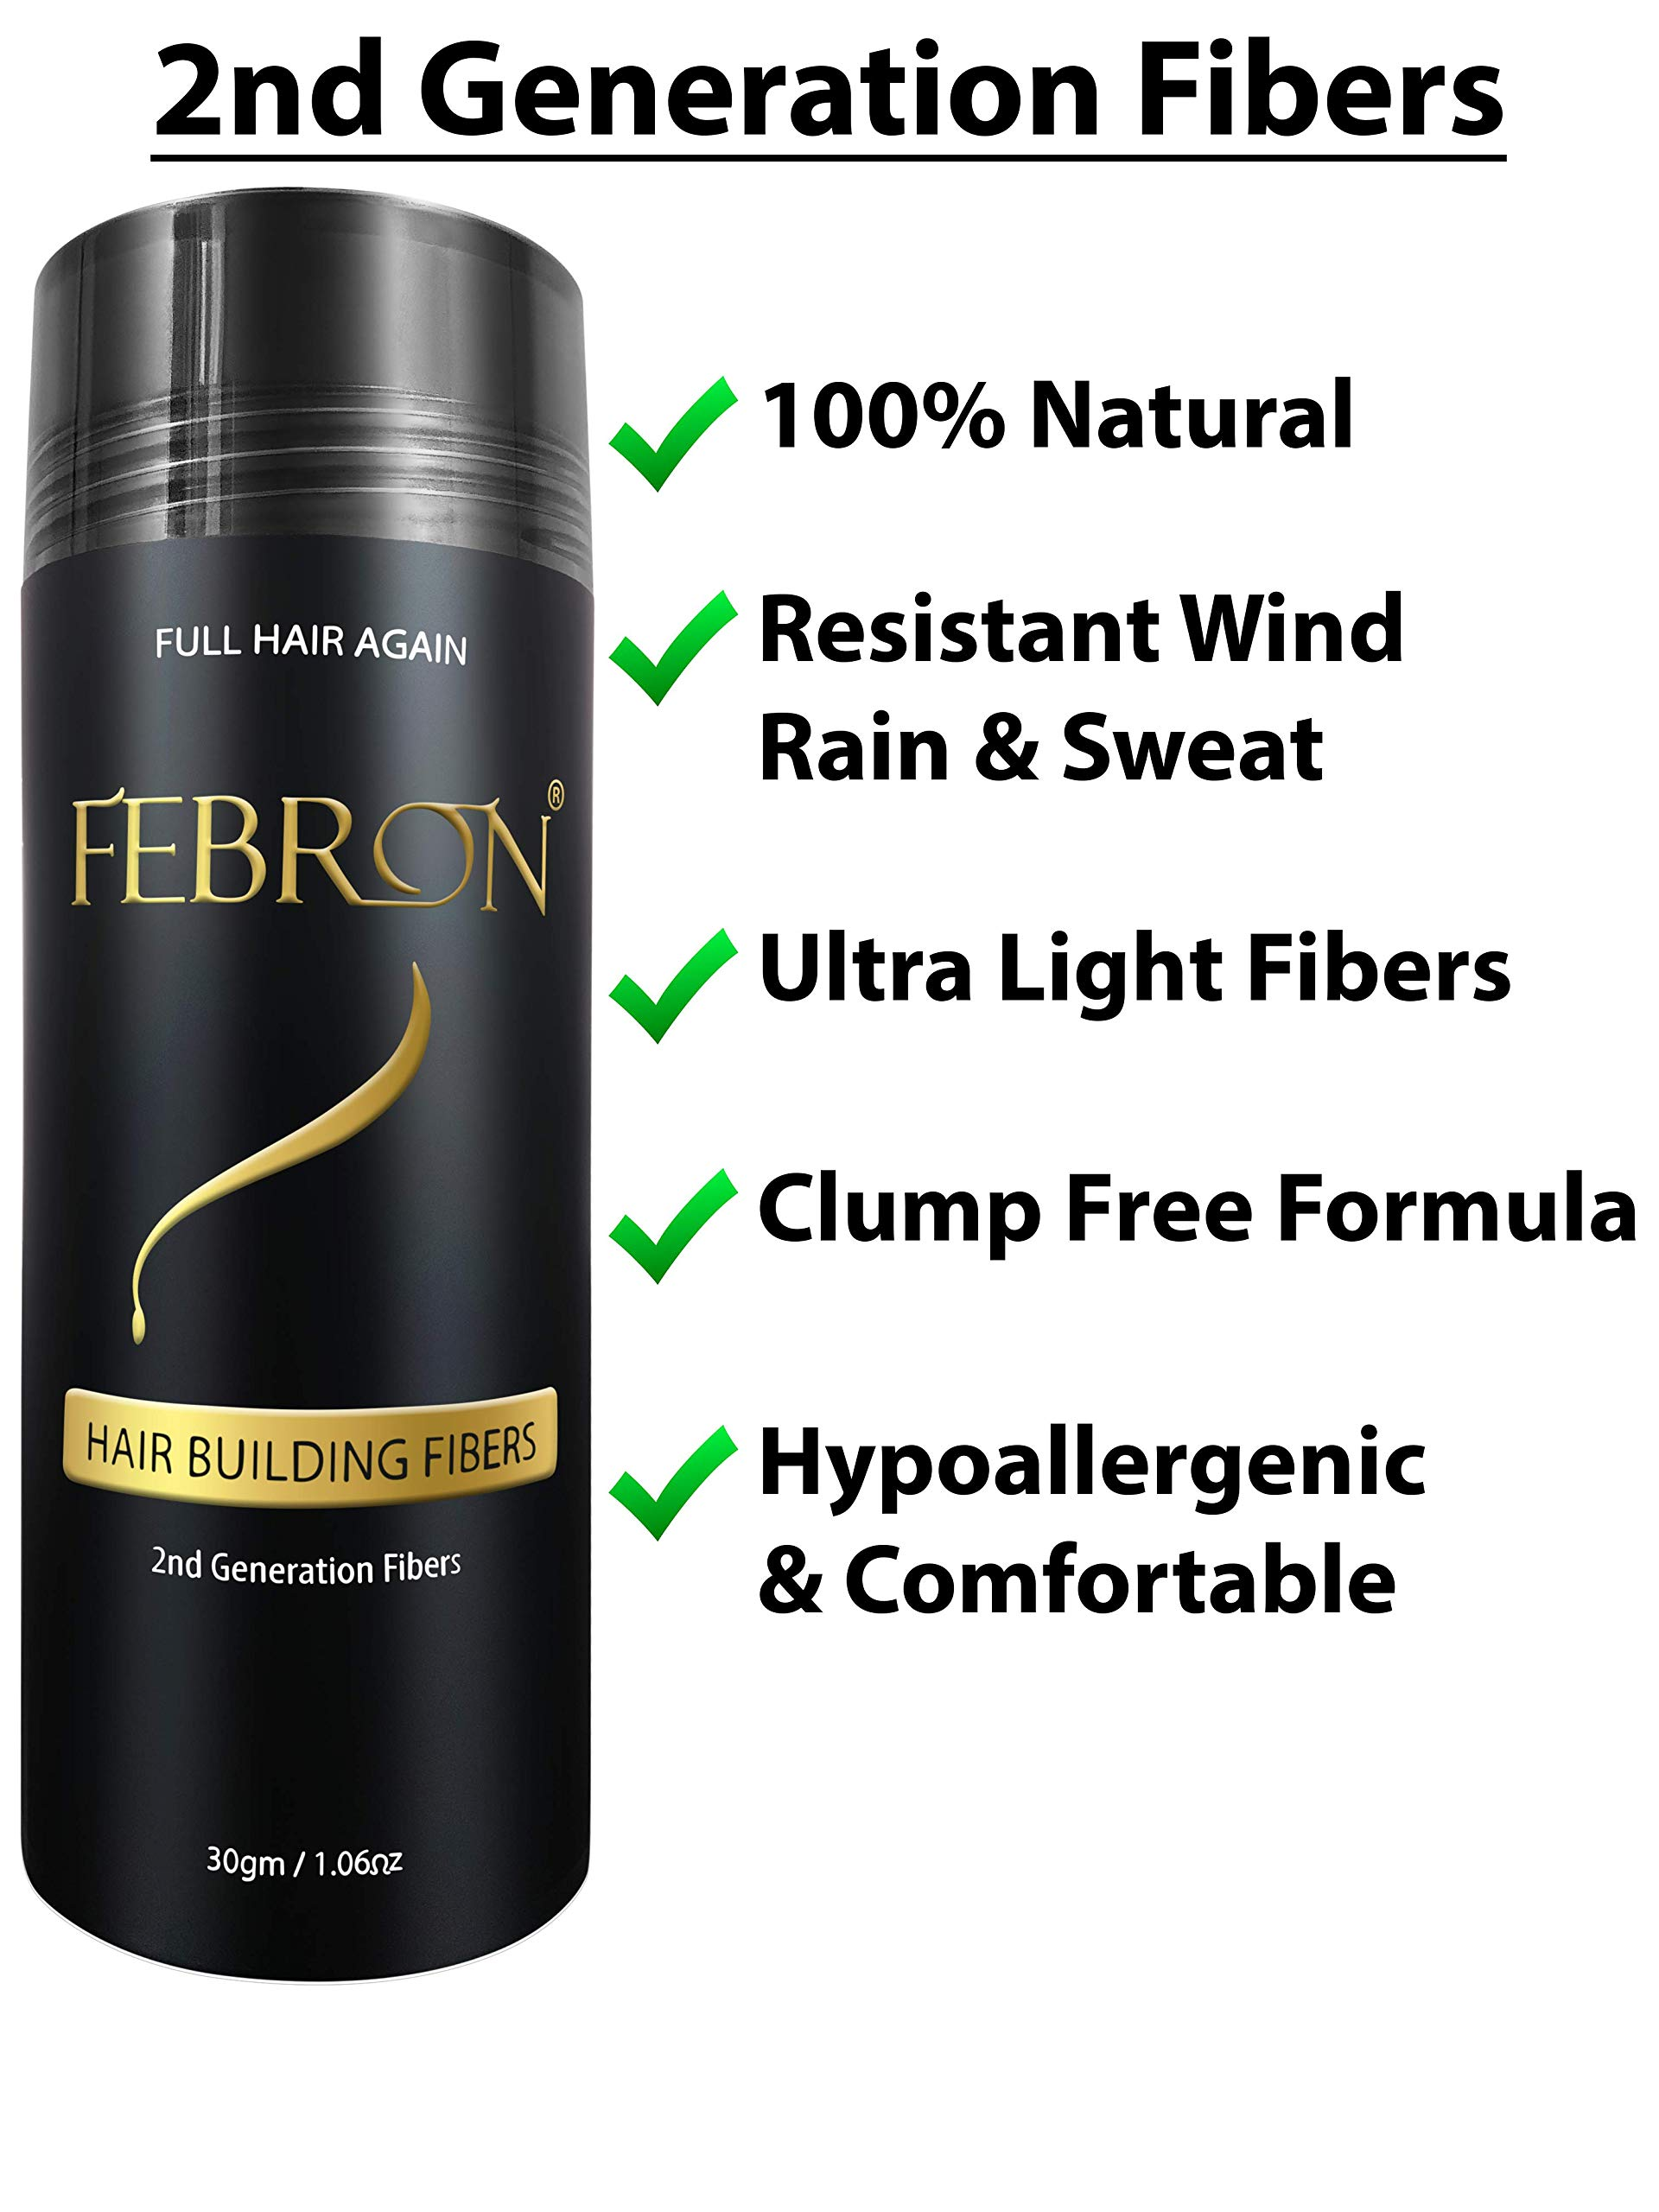 FEBRON Hair Building Fibers PACK of 3 BIG Bottles TOTAL 90gm (3.18 oz) - Hair Loss Concealer Kit & Cover Bald Spots For Thinning Hair For Men & Women (Light Brown) by FEBRON (Image #3)